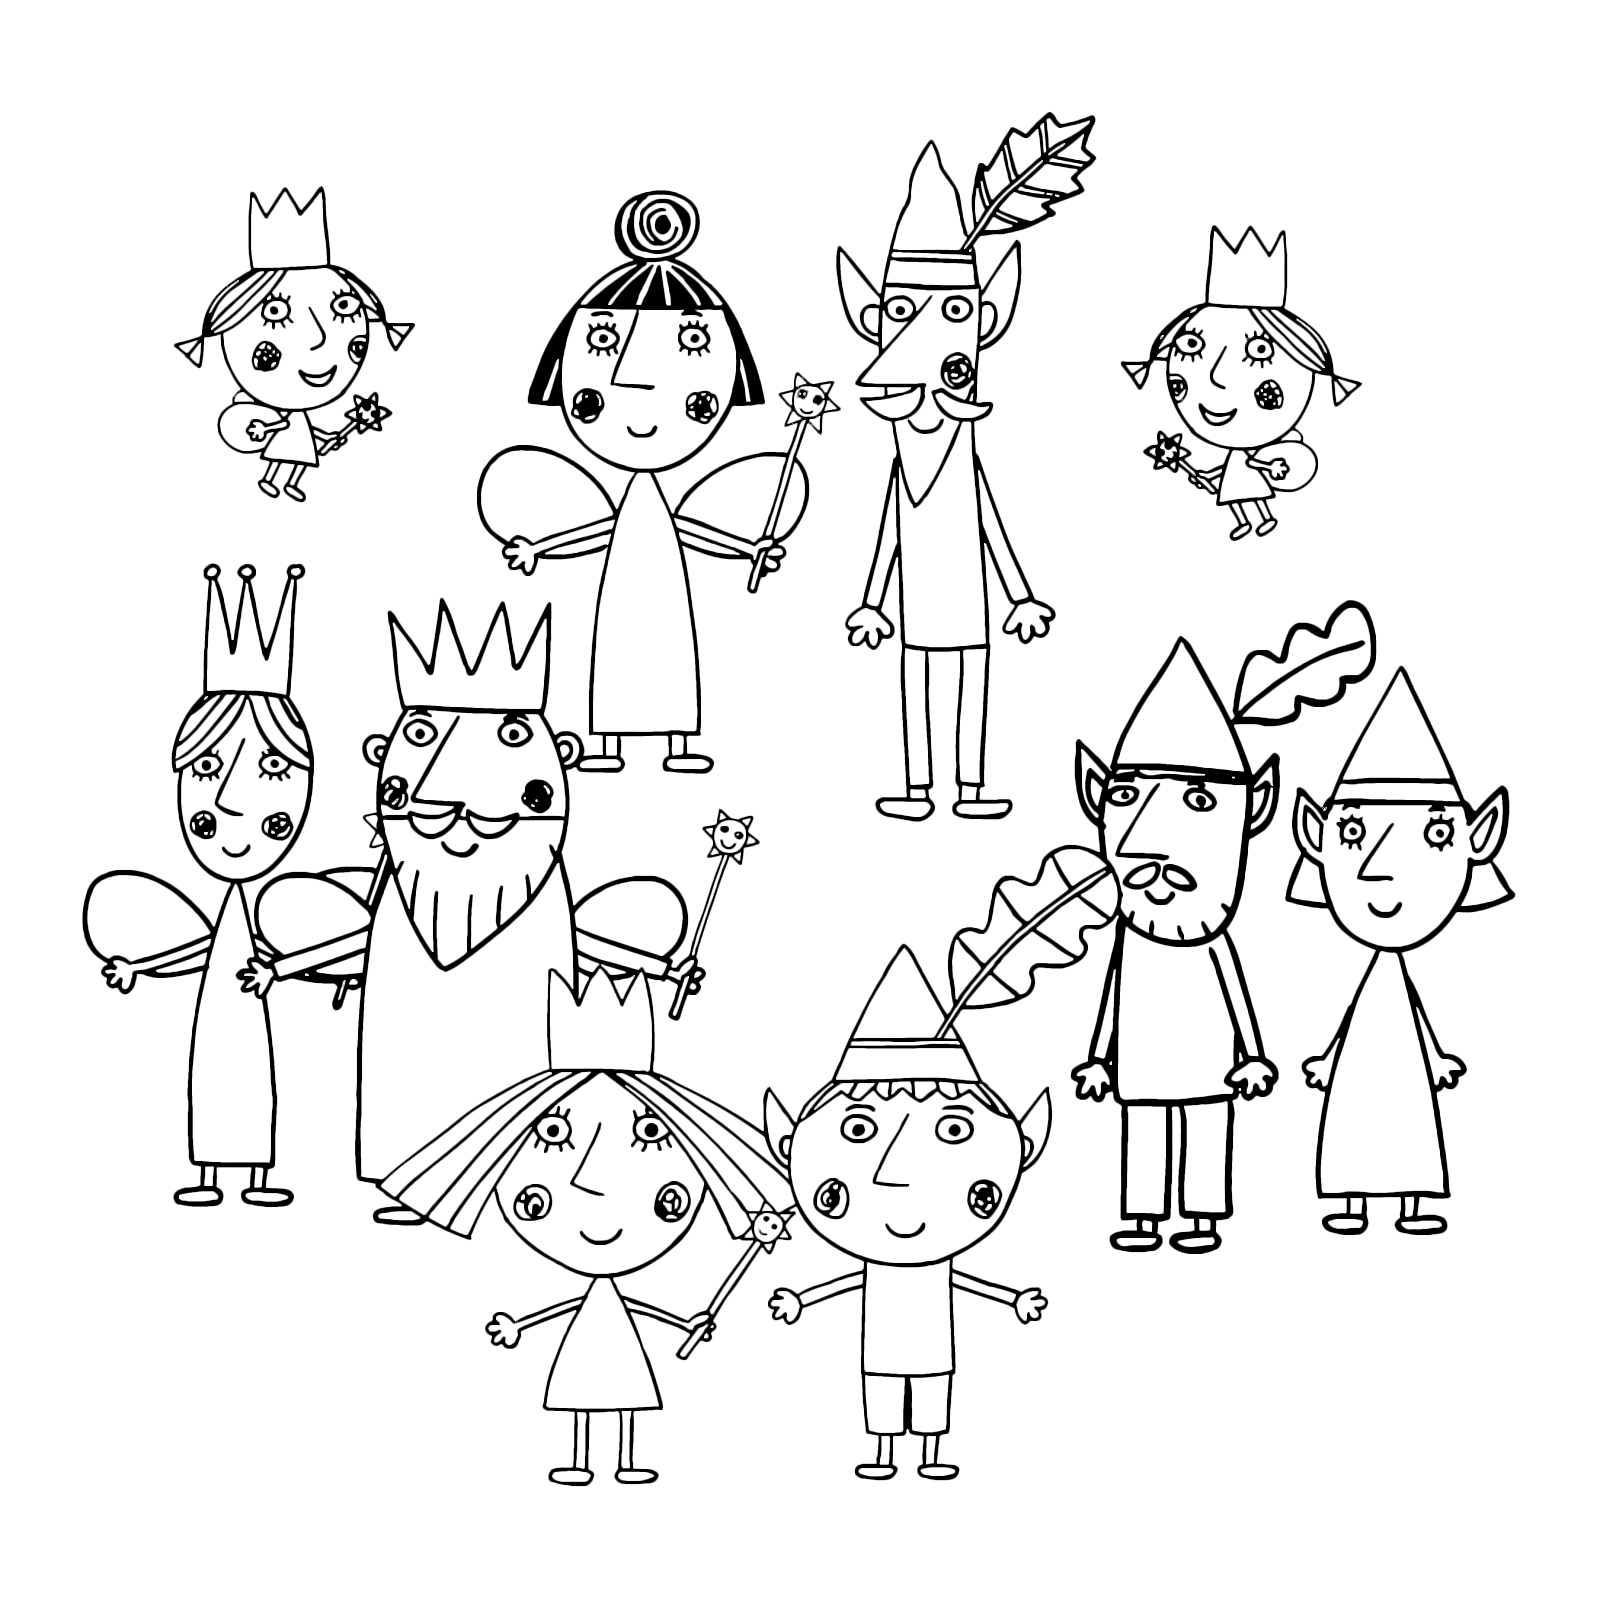 Ben And Holly Coloring Pages  Ben and holly, Coloring pages, Free